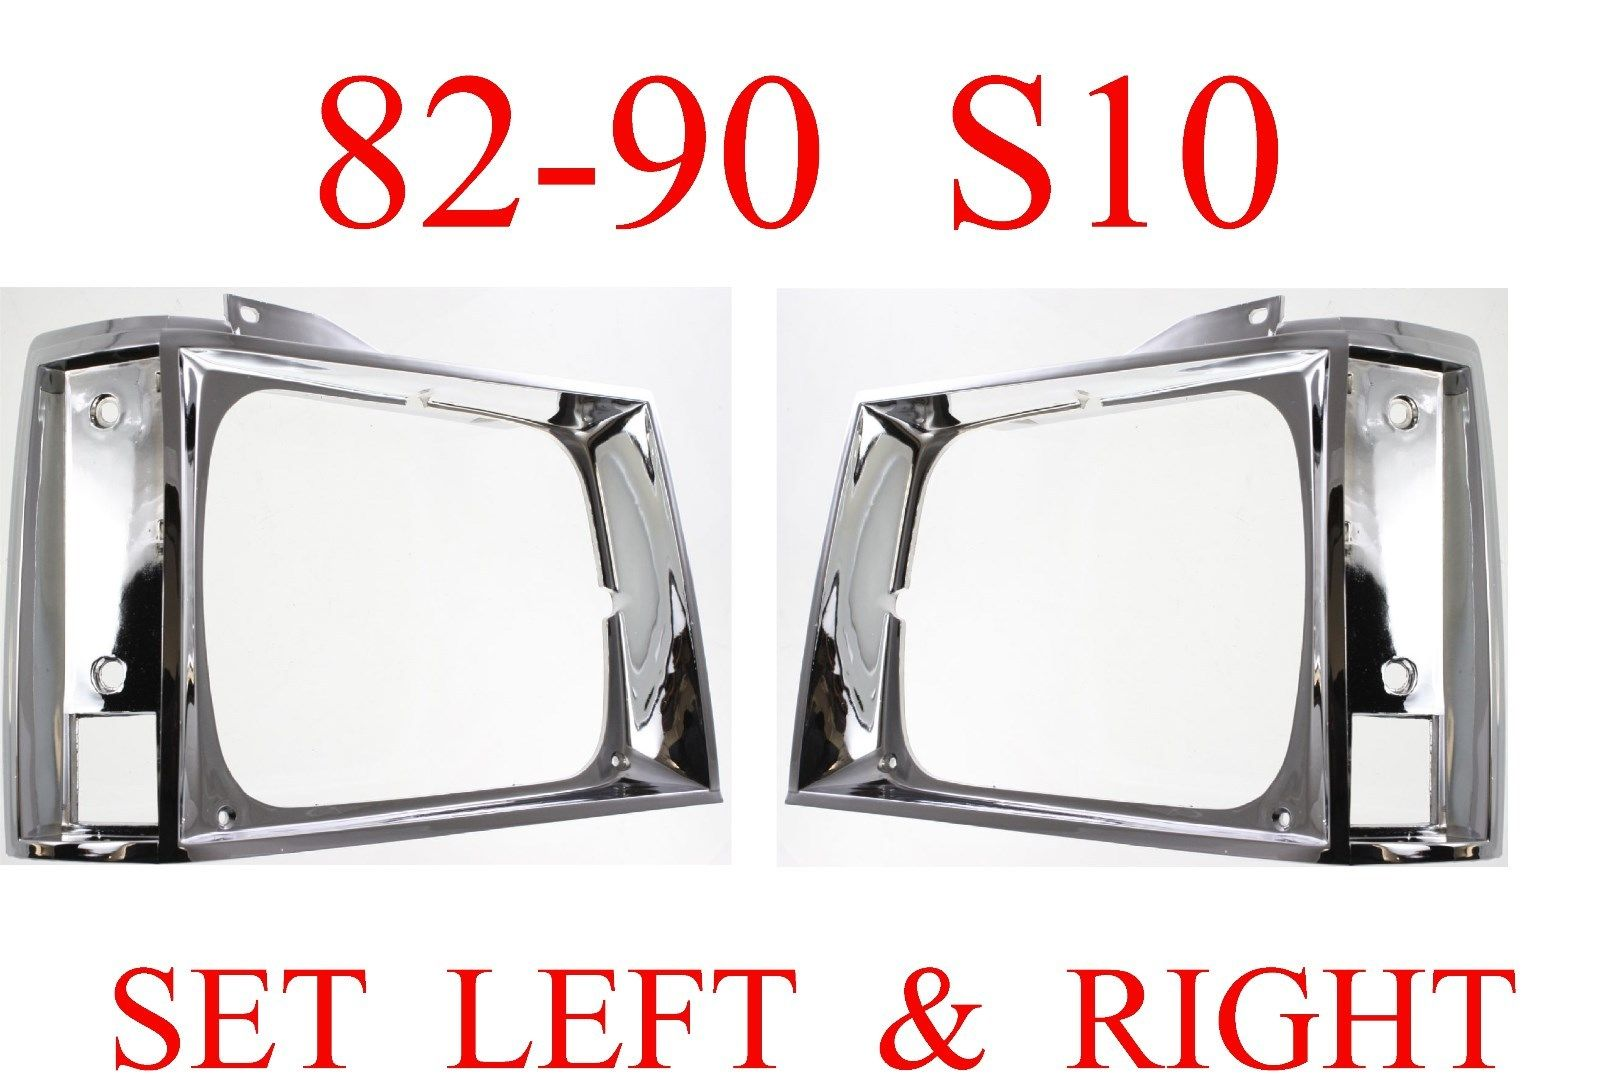 82-93 S10 Chrome Head Light Door Set